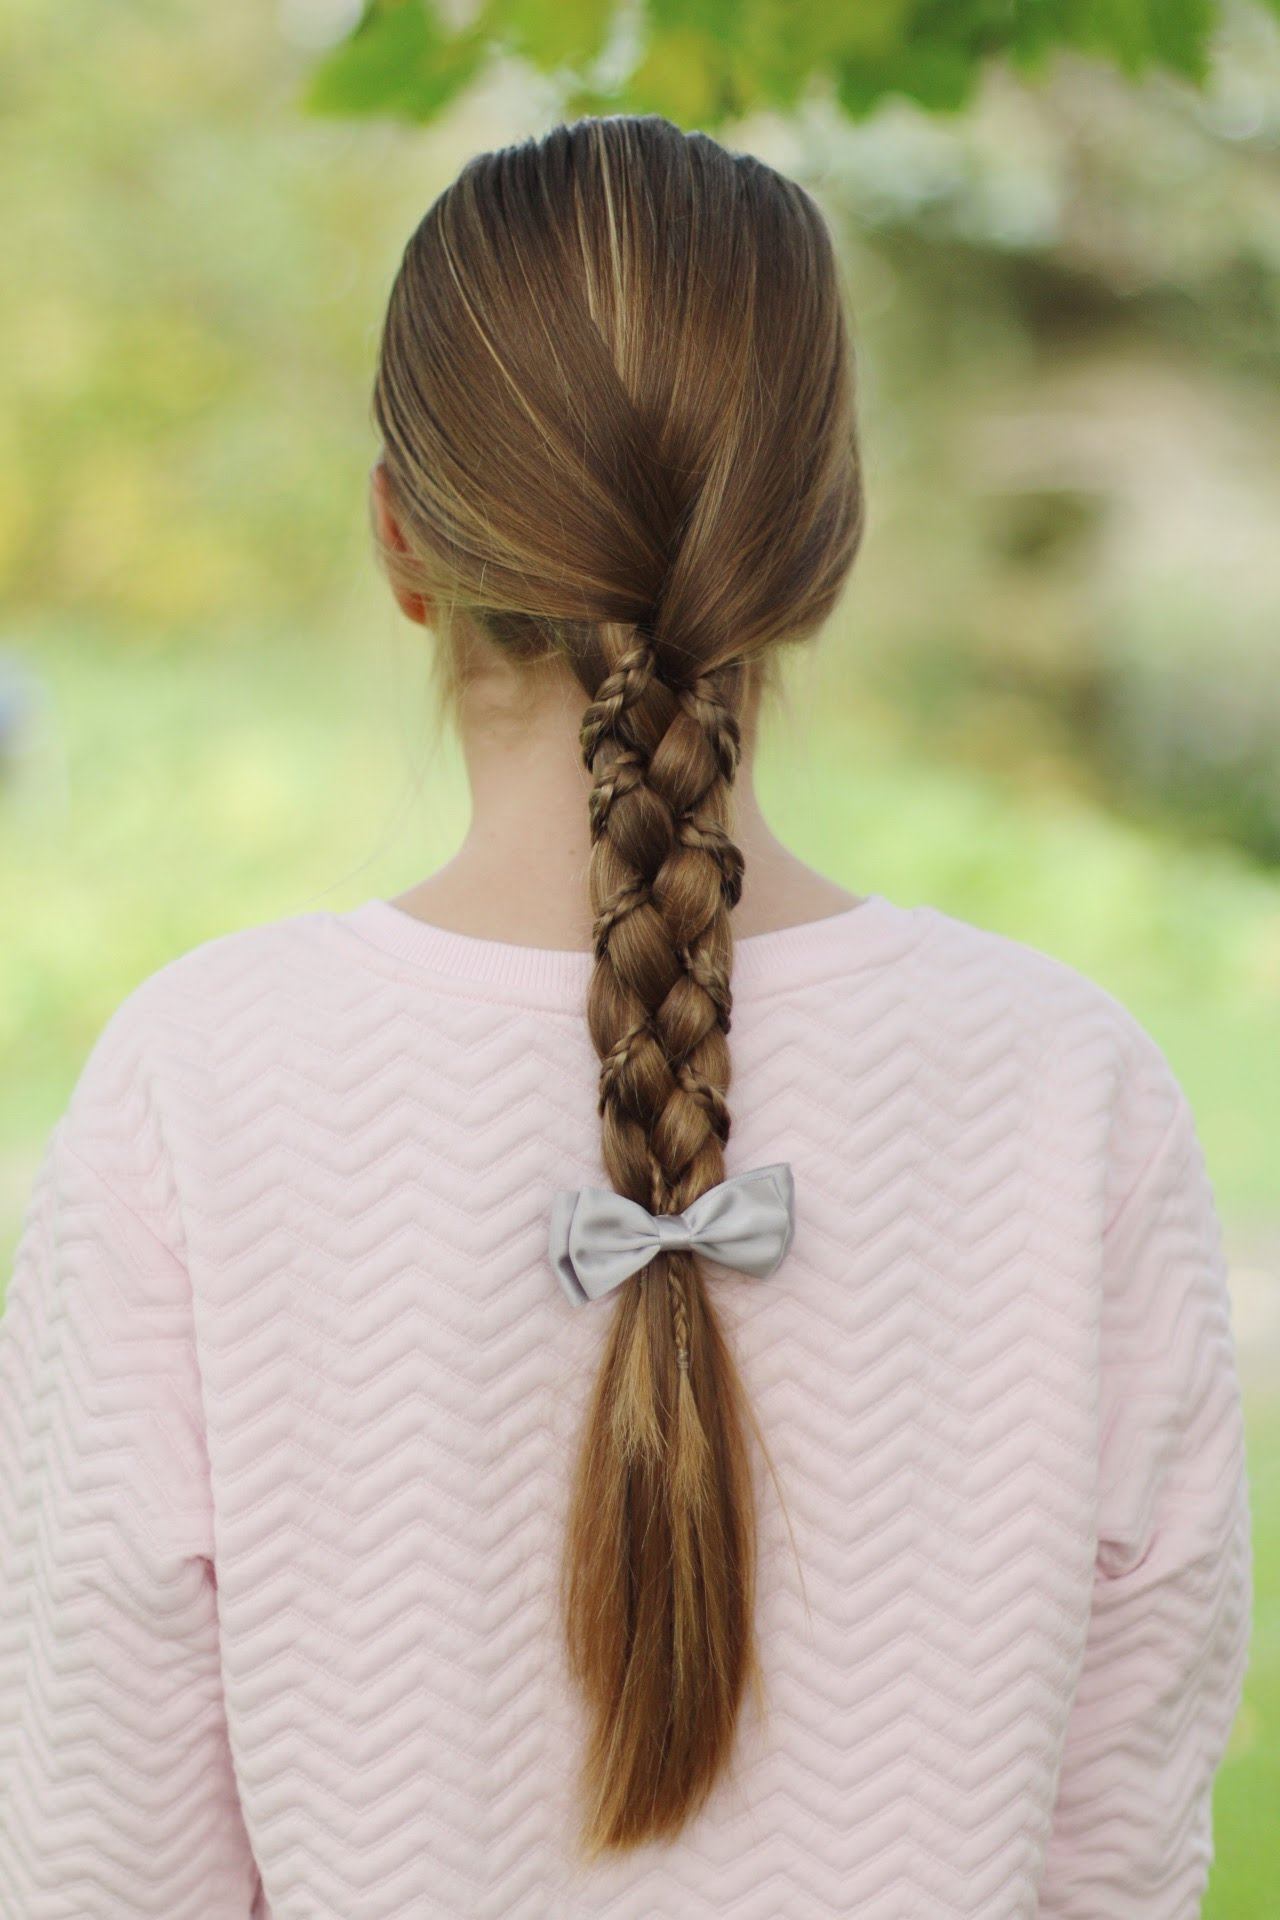 Explore Intended For Widely Used Back And Forth Skinny Braided Hairstyles (Gallery 16 of 20)